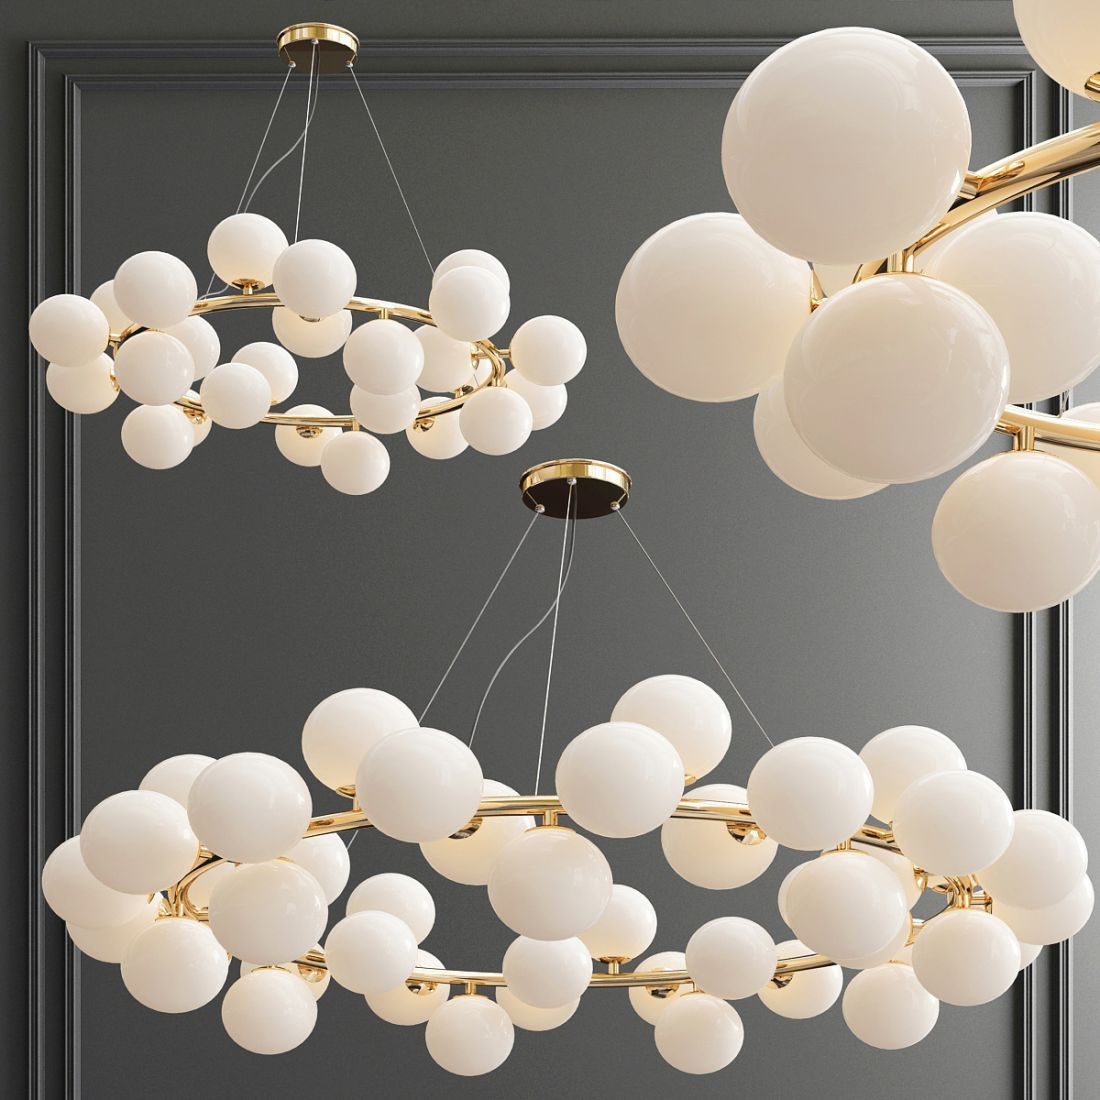 Mimosa Round 25 45 Lamp Chandelier 3d Model For Vray